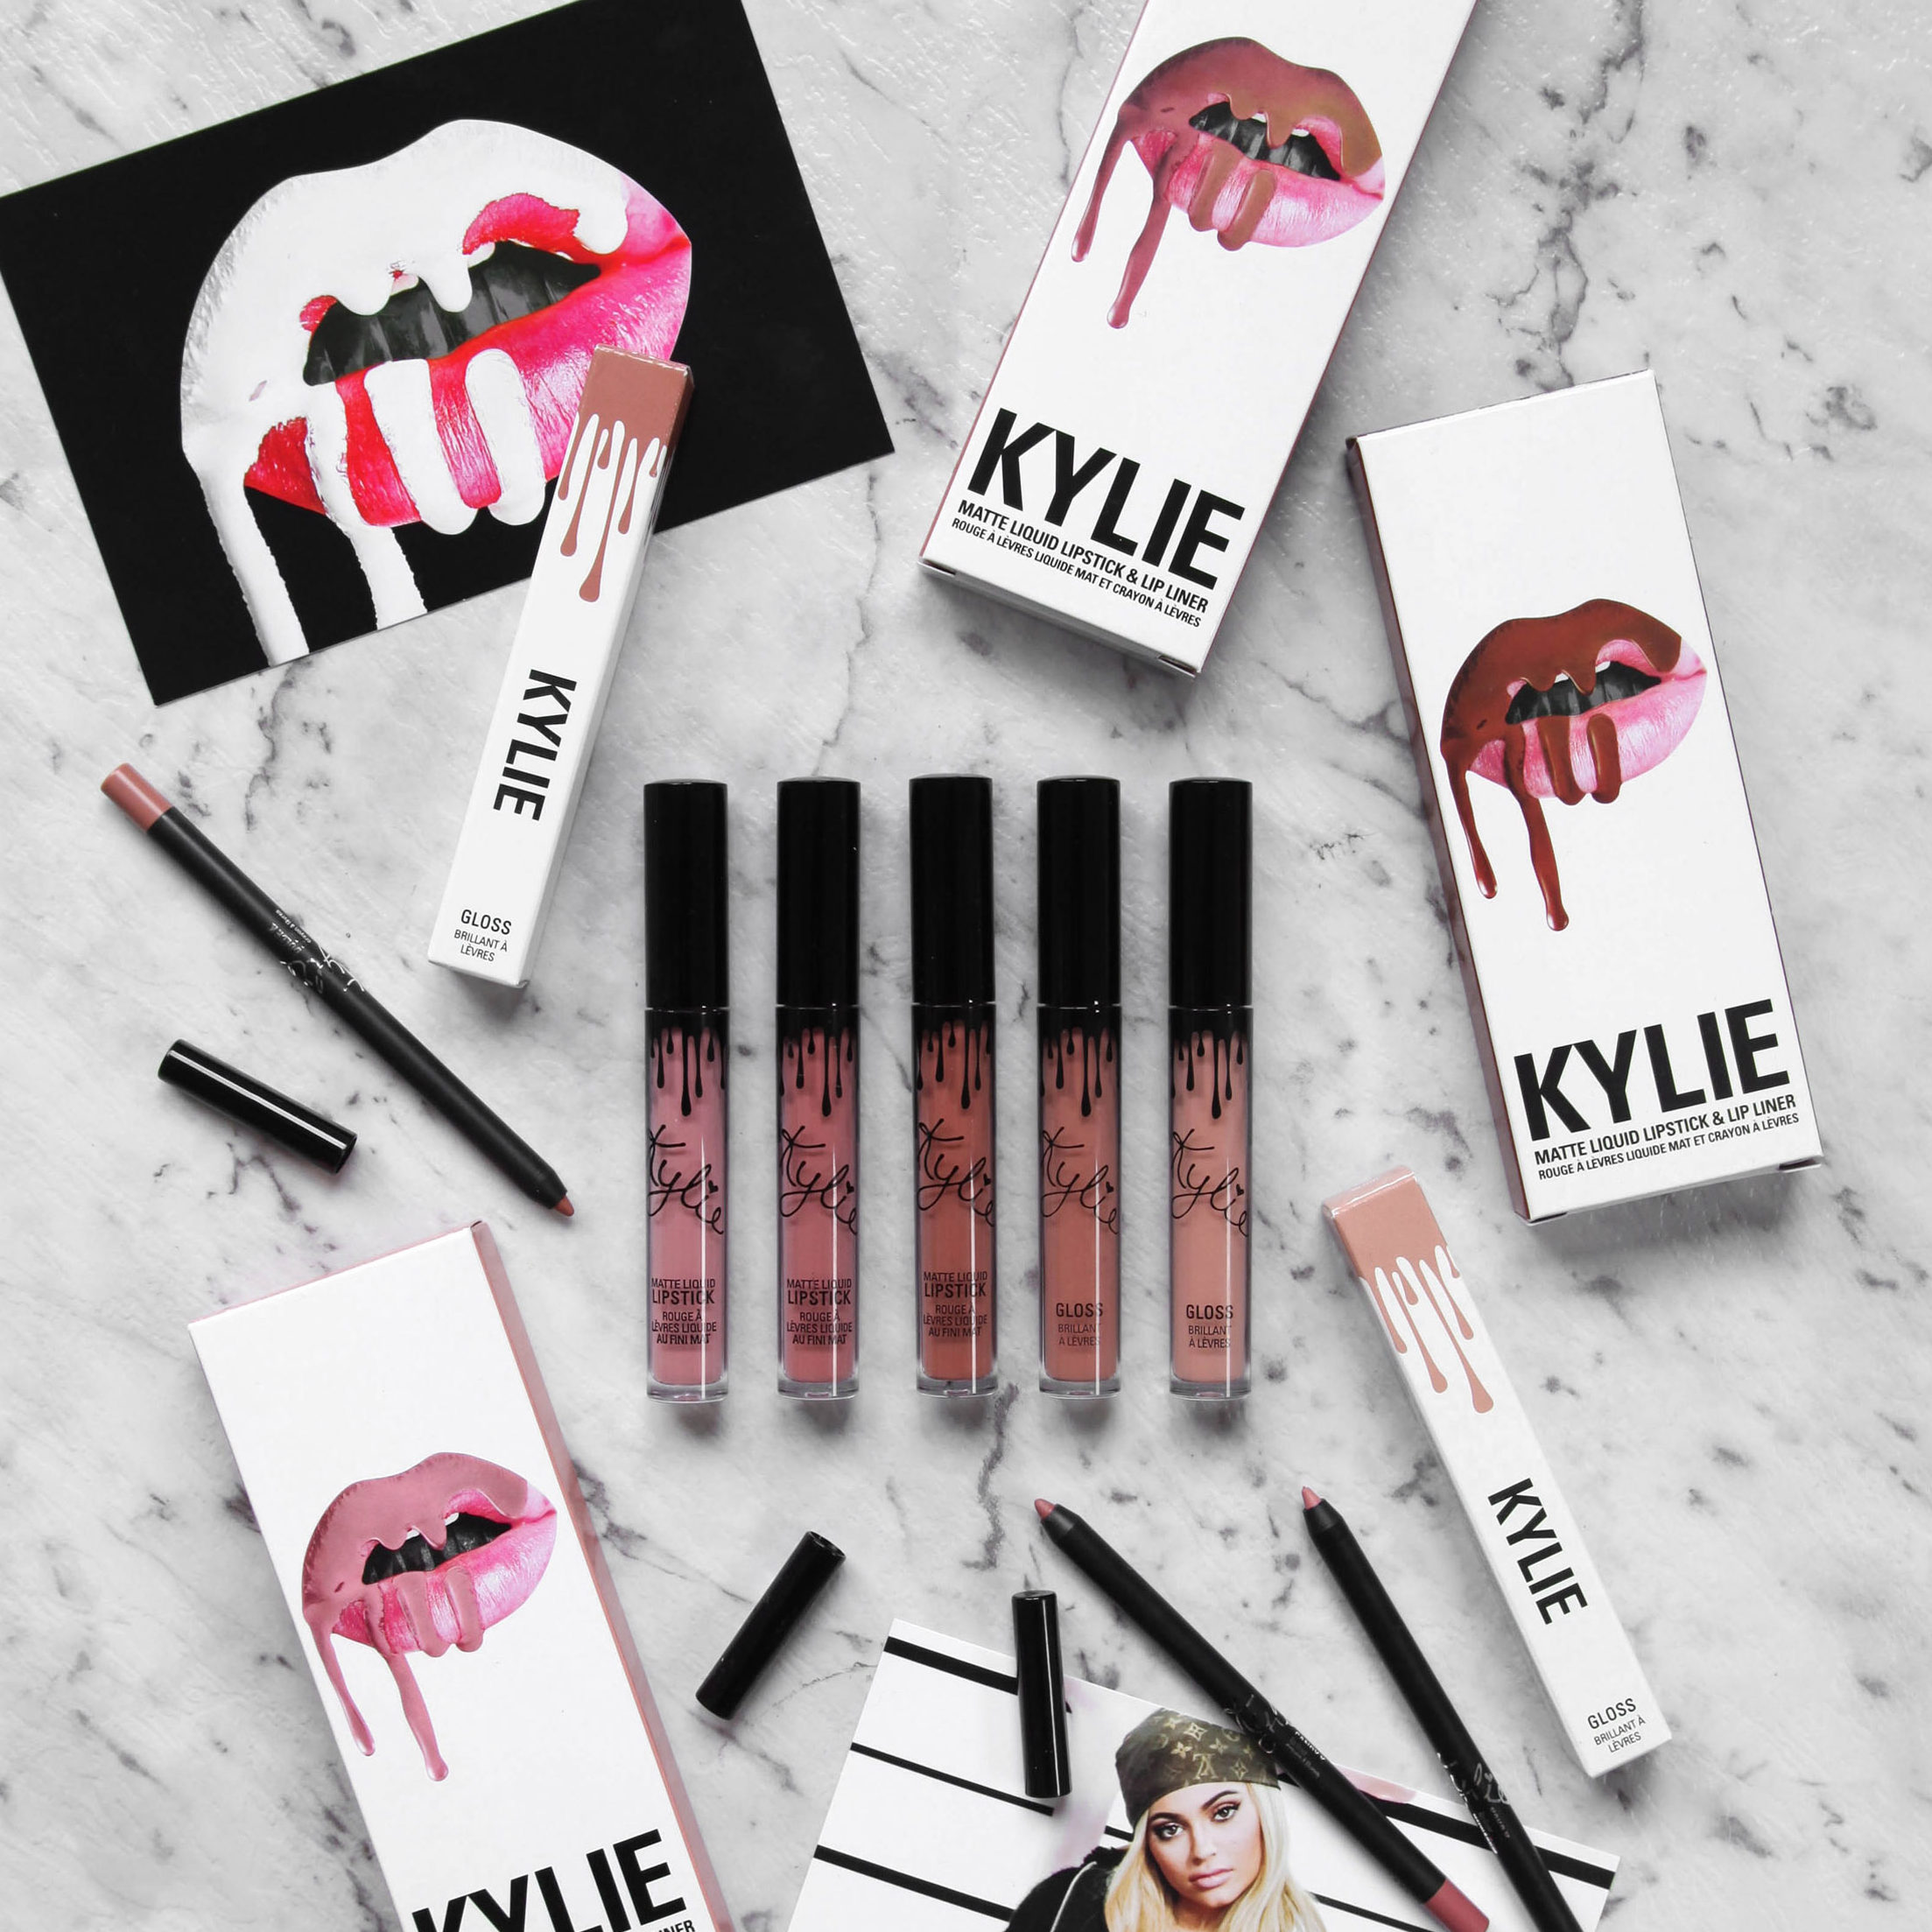 gifts from Kylie